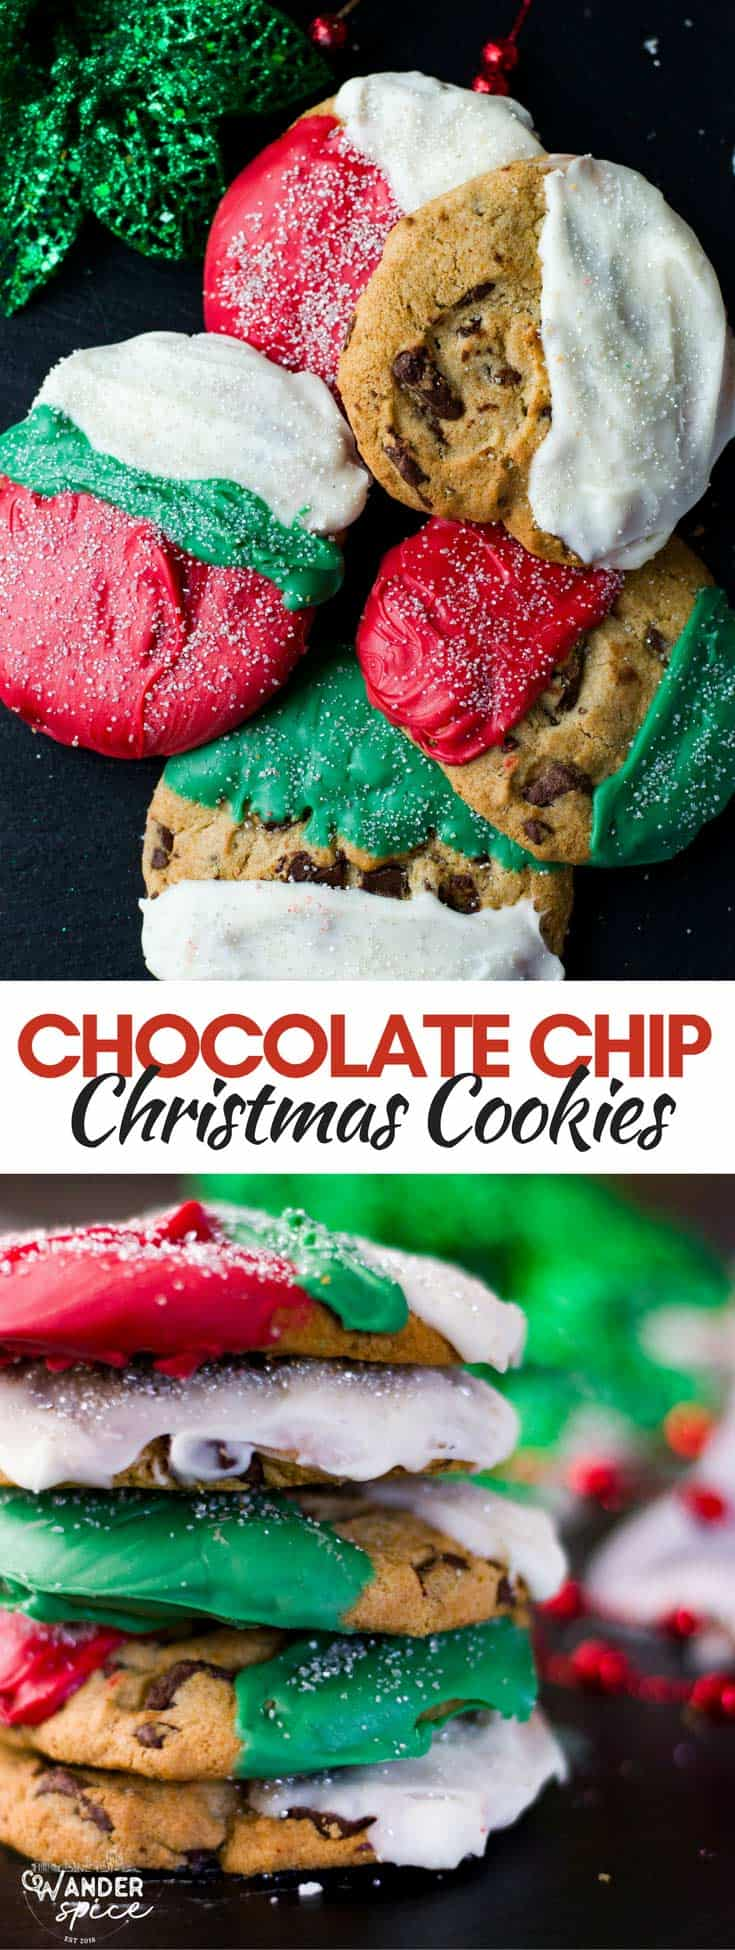 Decorated Christmas Chocolate Chip Cookies for the Holidays. Easy Recipe.